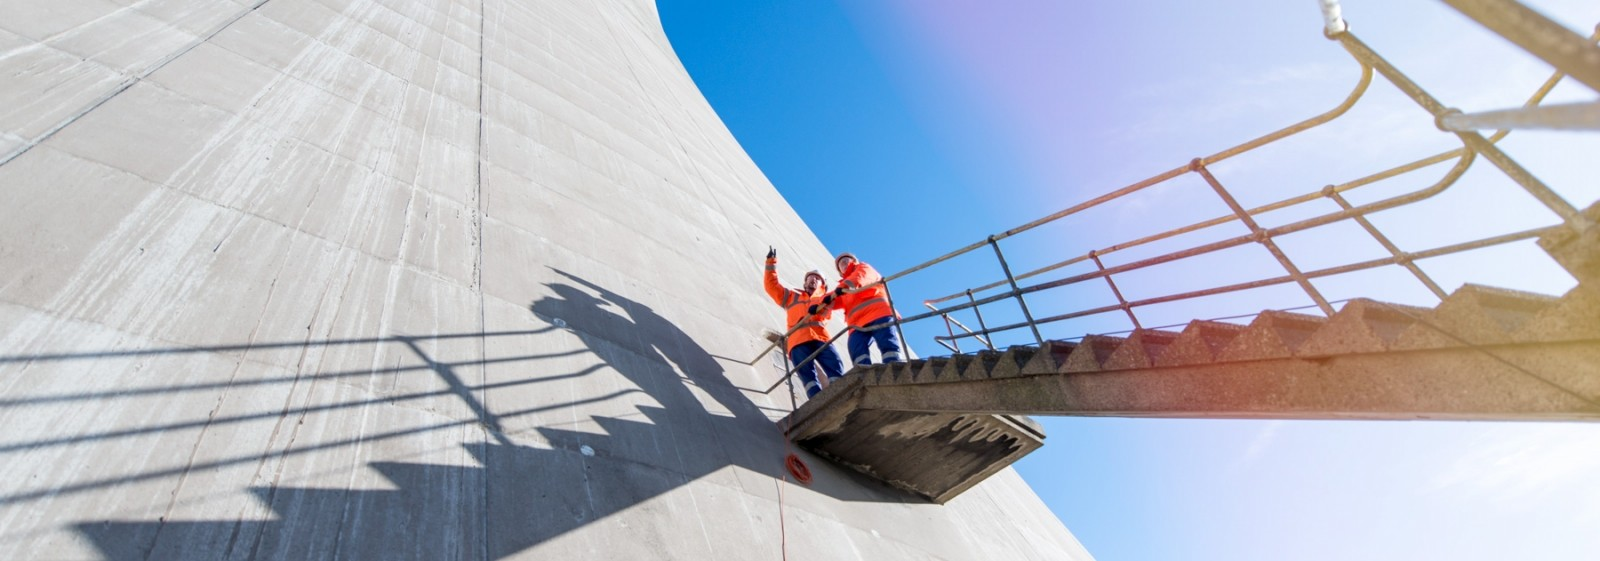 Two male engineers closely inspecting a power station cooling tower